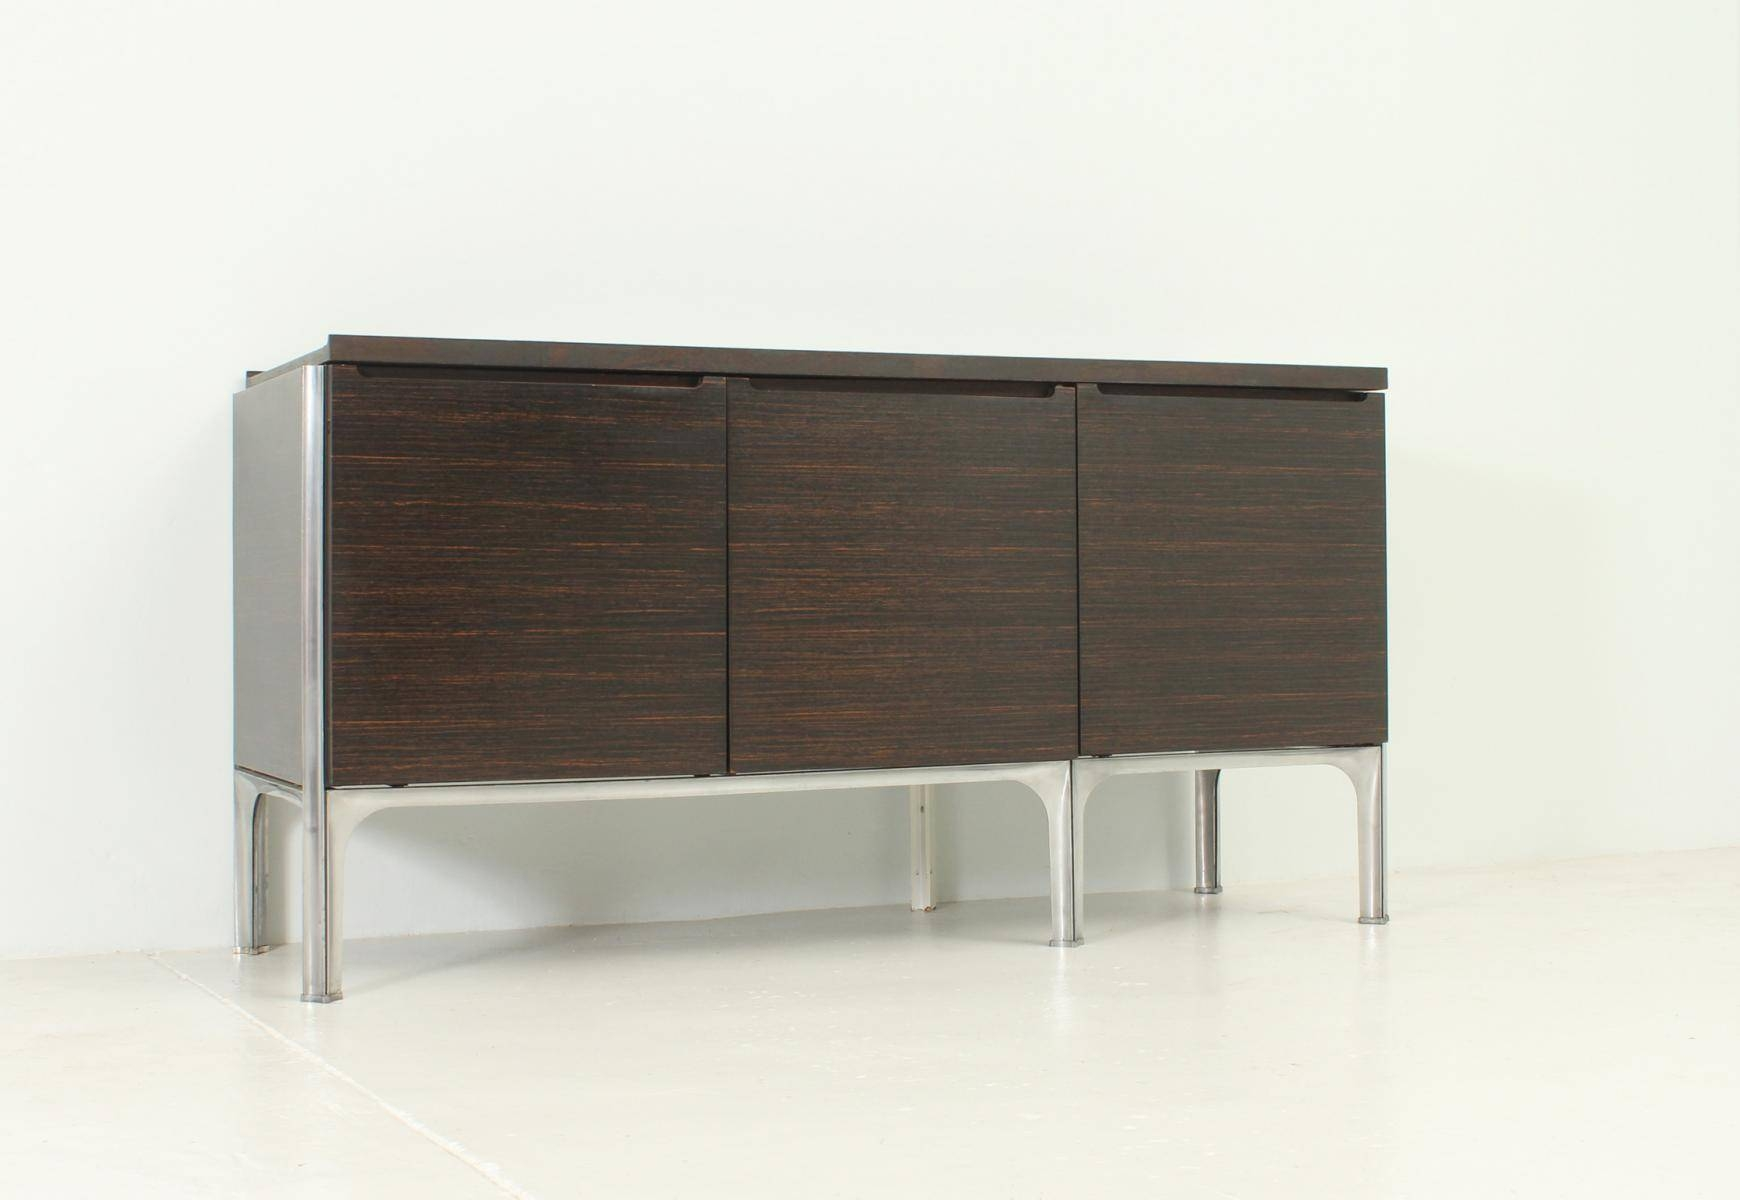 Macassar Ebony Wood Sideboardraymond Loewy For Df 2000 For inside Affinity Sideboards (Image 6 of 15)